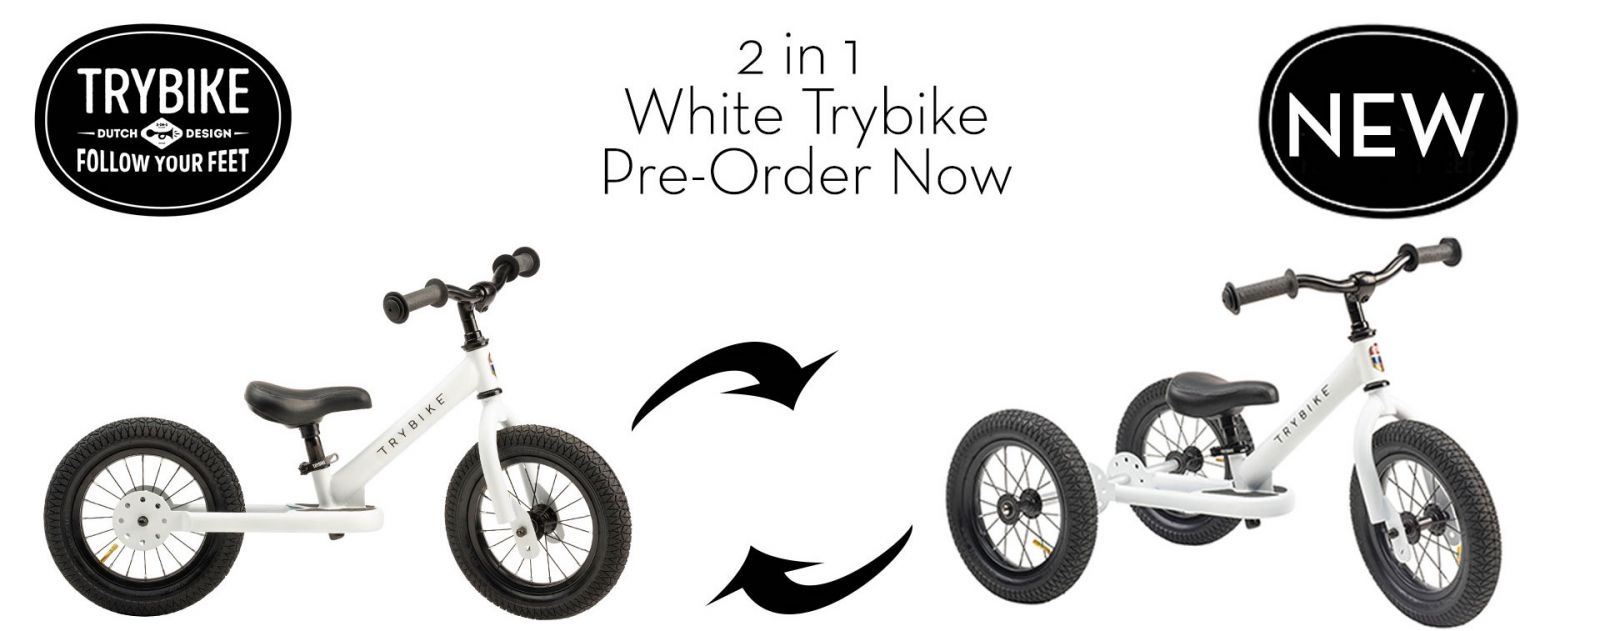 2020 Trybike Colour revealed! It is White